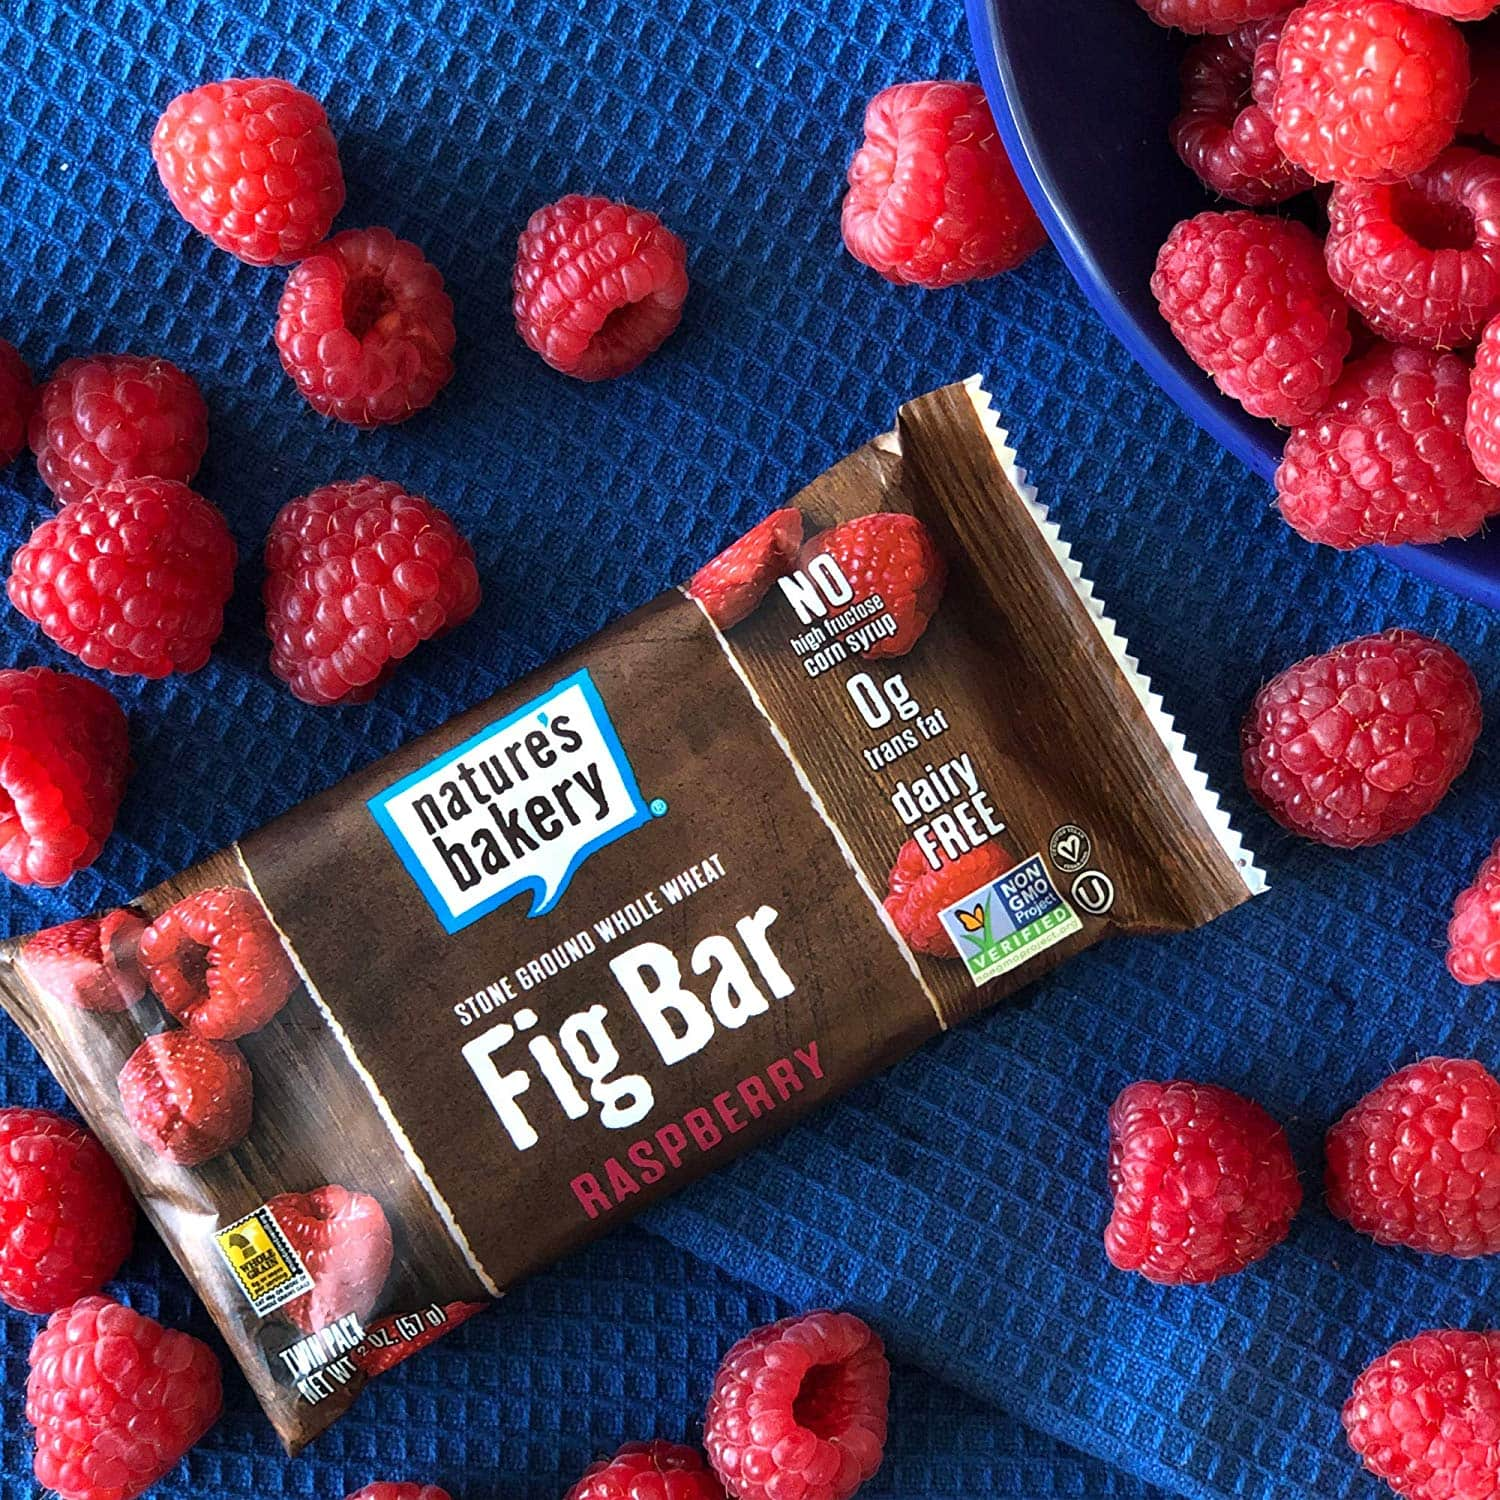 12-Ct Nature's Bakery Whole Wheat Raspberry Fig Bar $4.55 Each w/ S&S + Free S&H